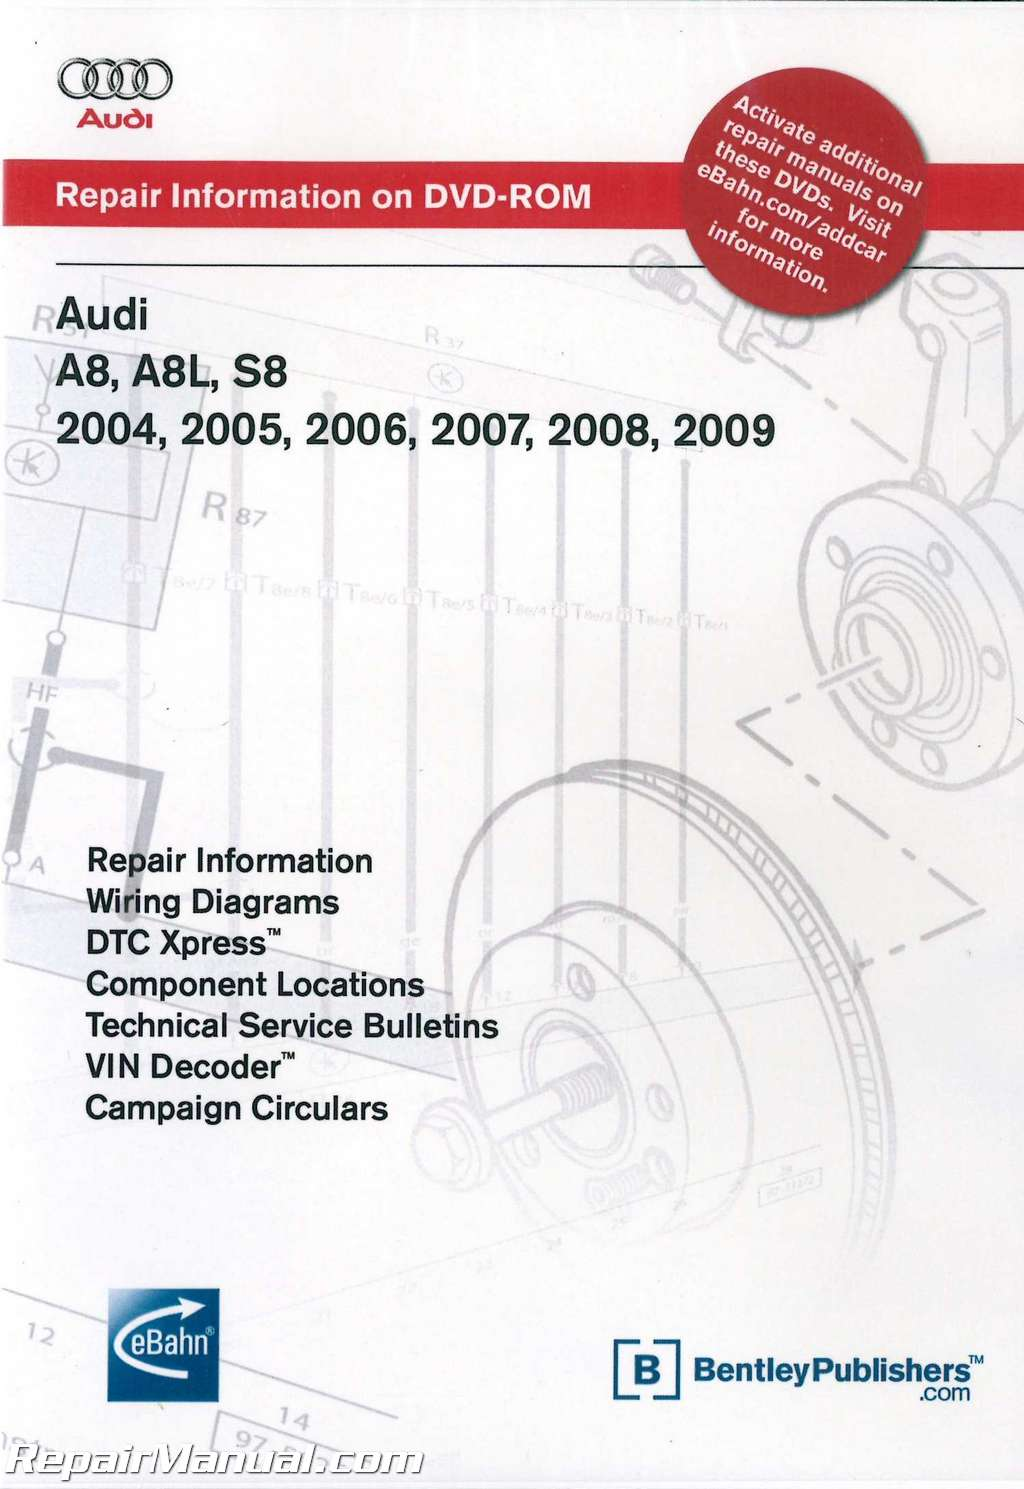 Audi A8 A8L S8 20042009 Repair Manual DVDROM